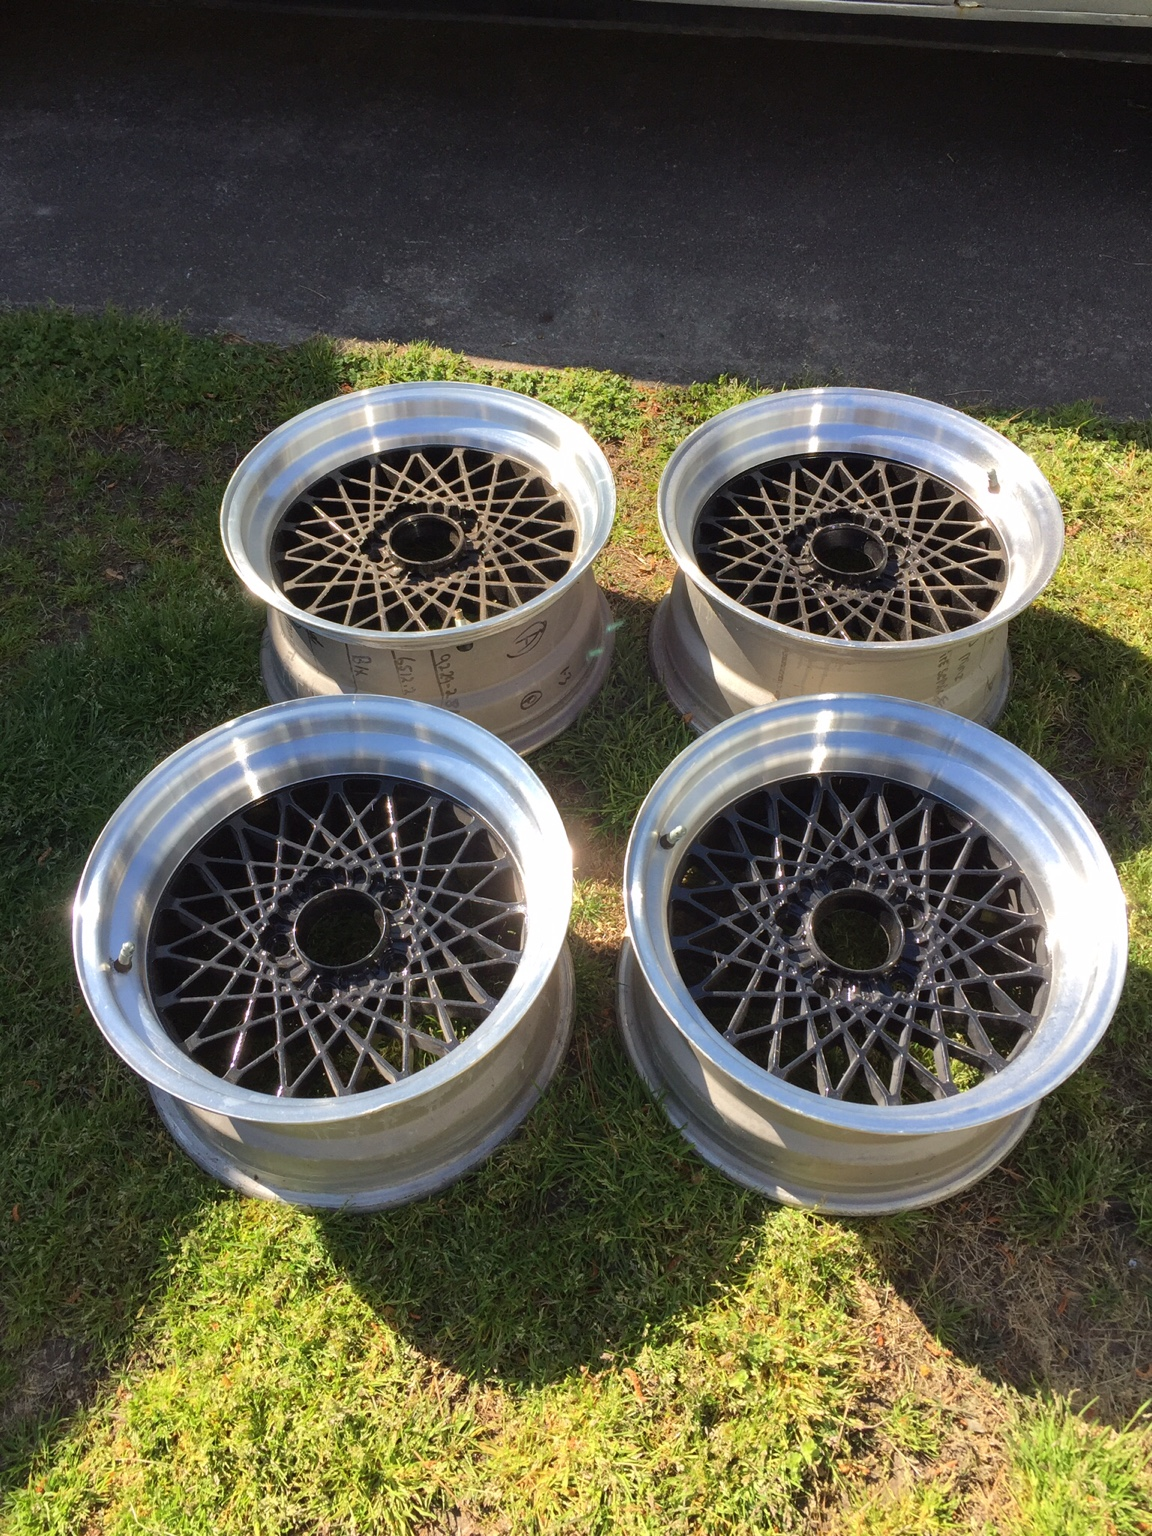 Wheels Are 16x8 With Offsets Of 16 Front And 0 Rear